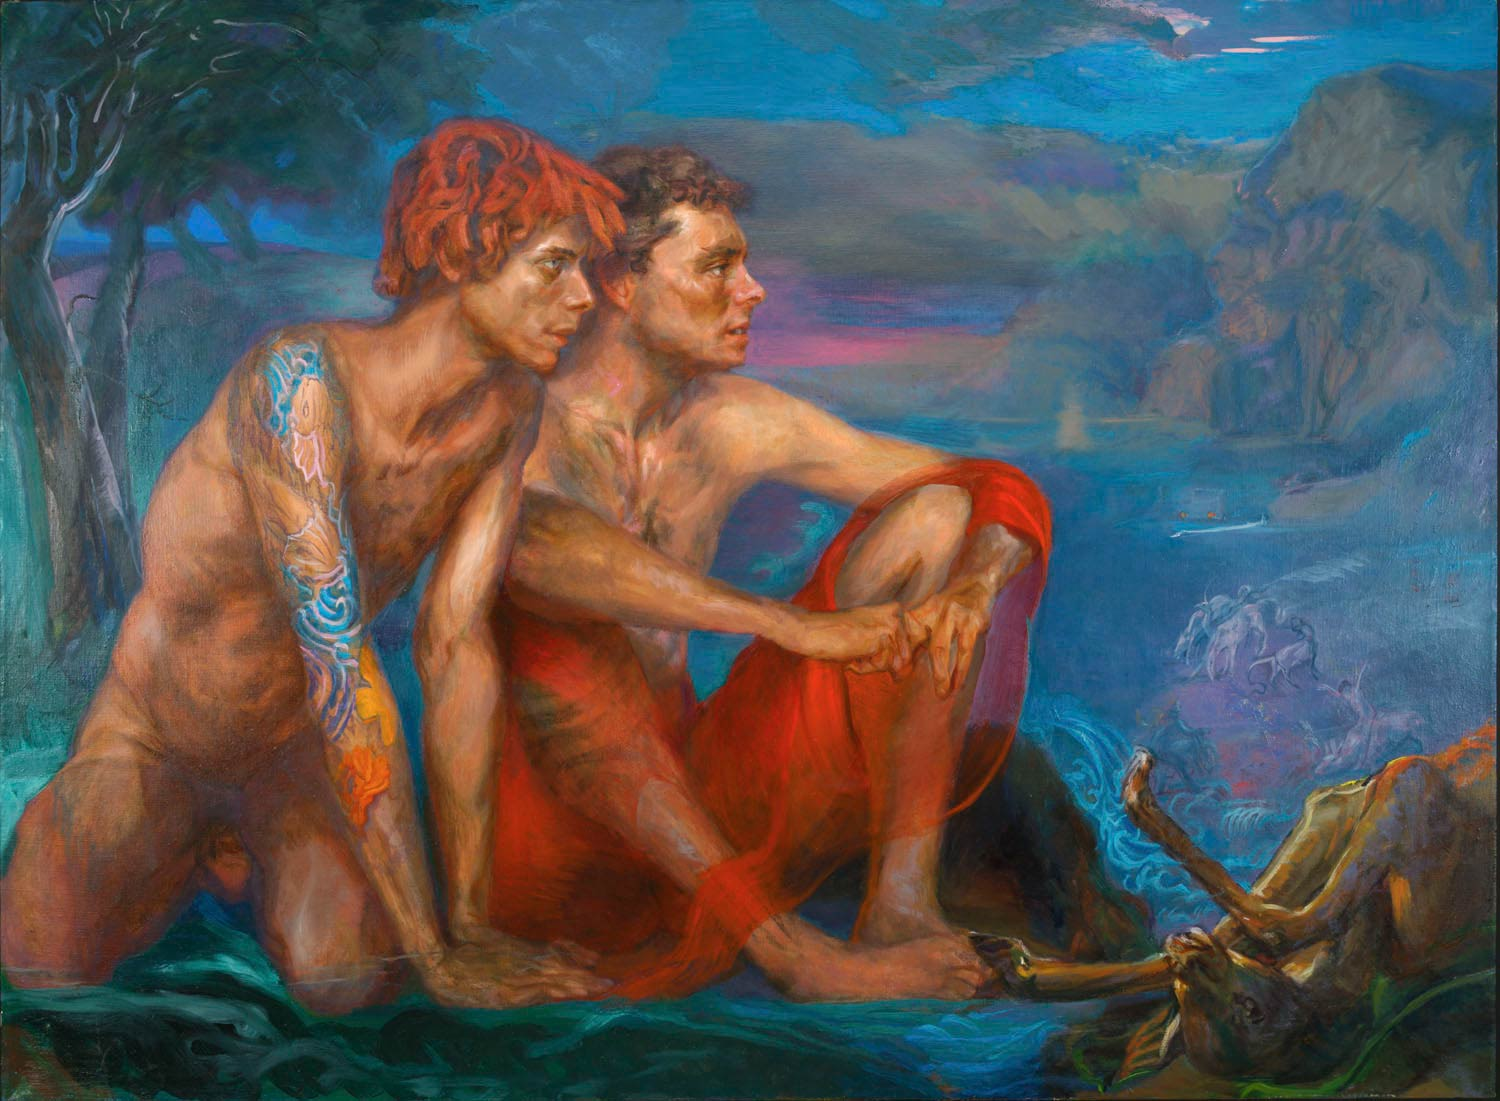 Tatoos 48 x 60 in oil canvas 1999